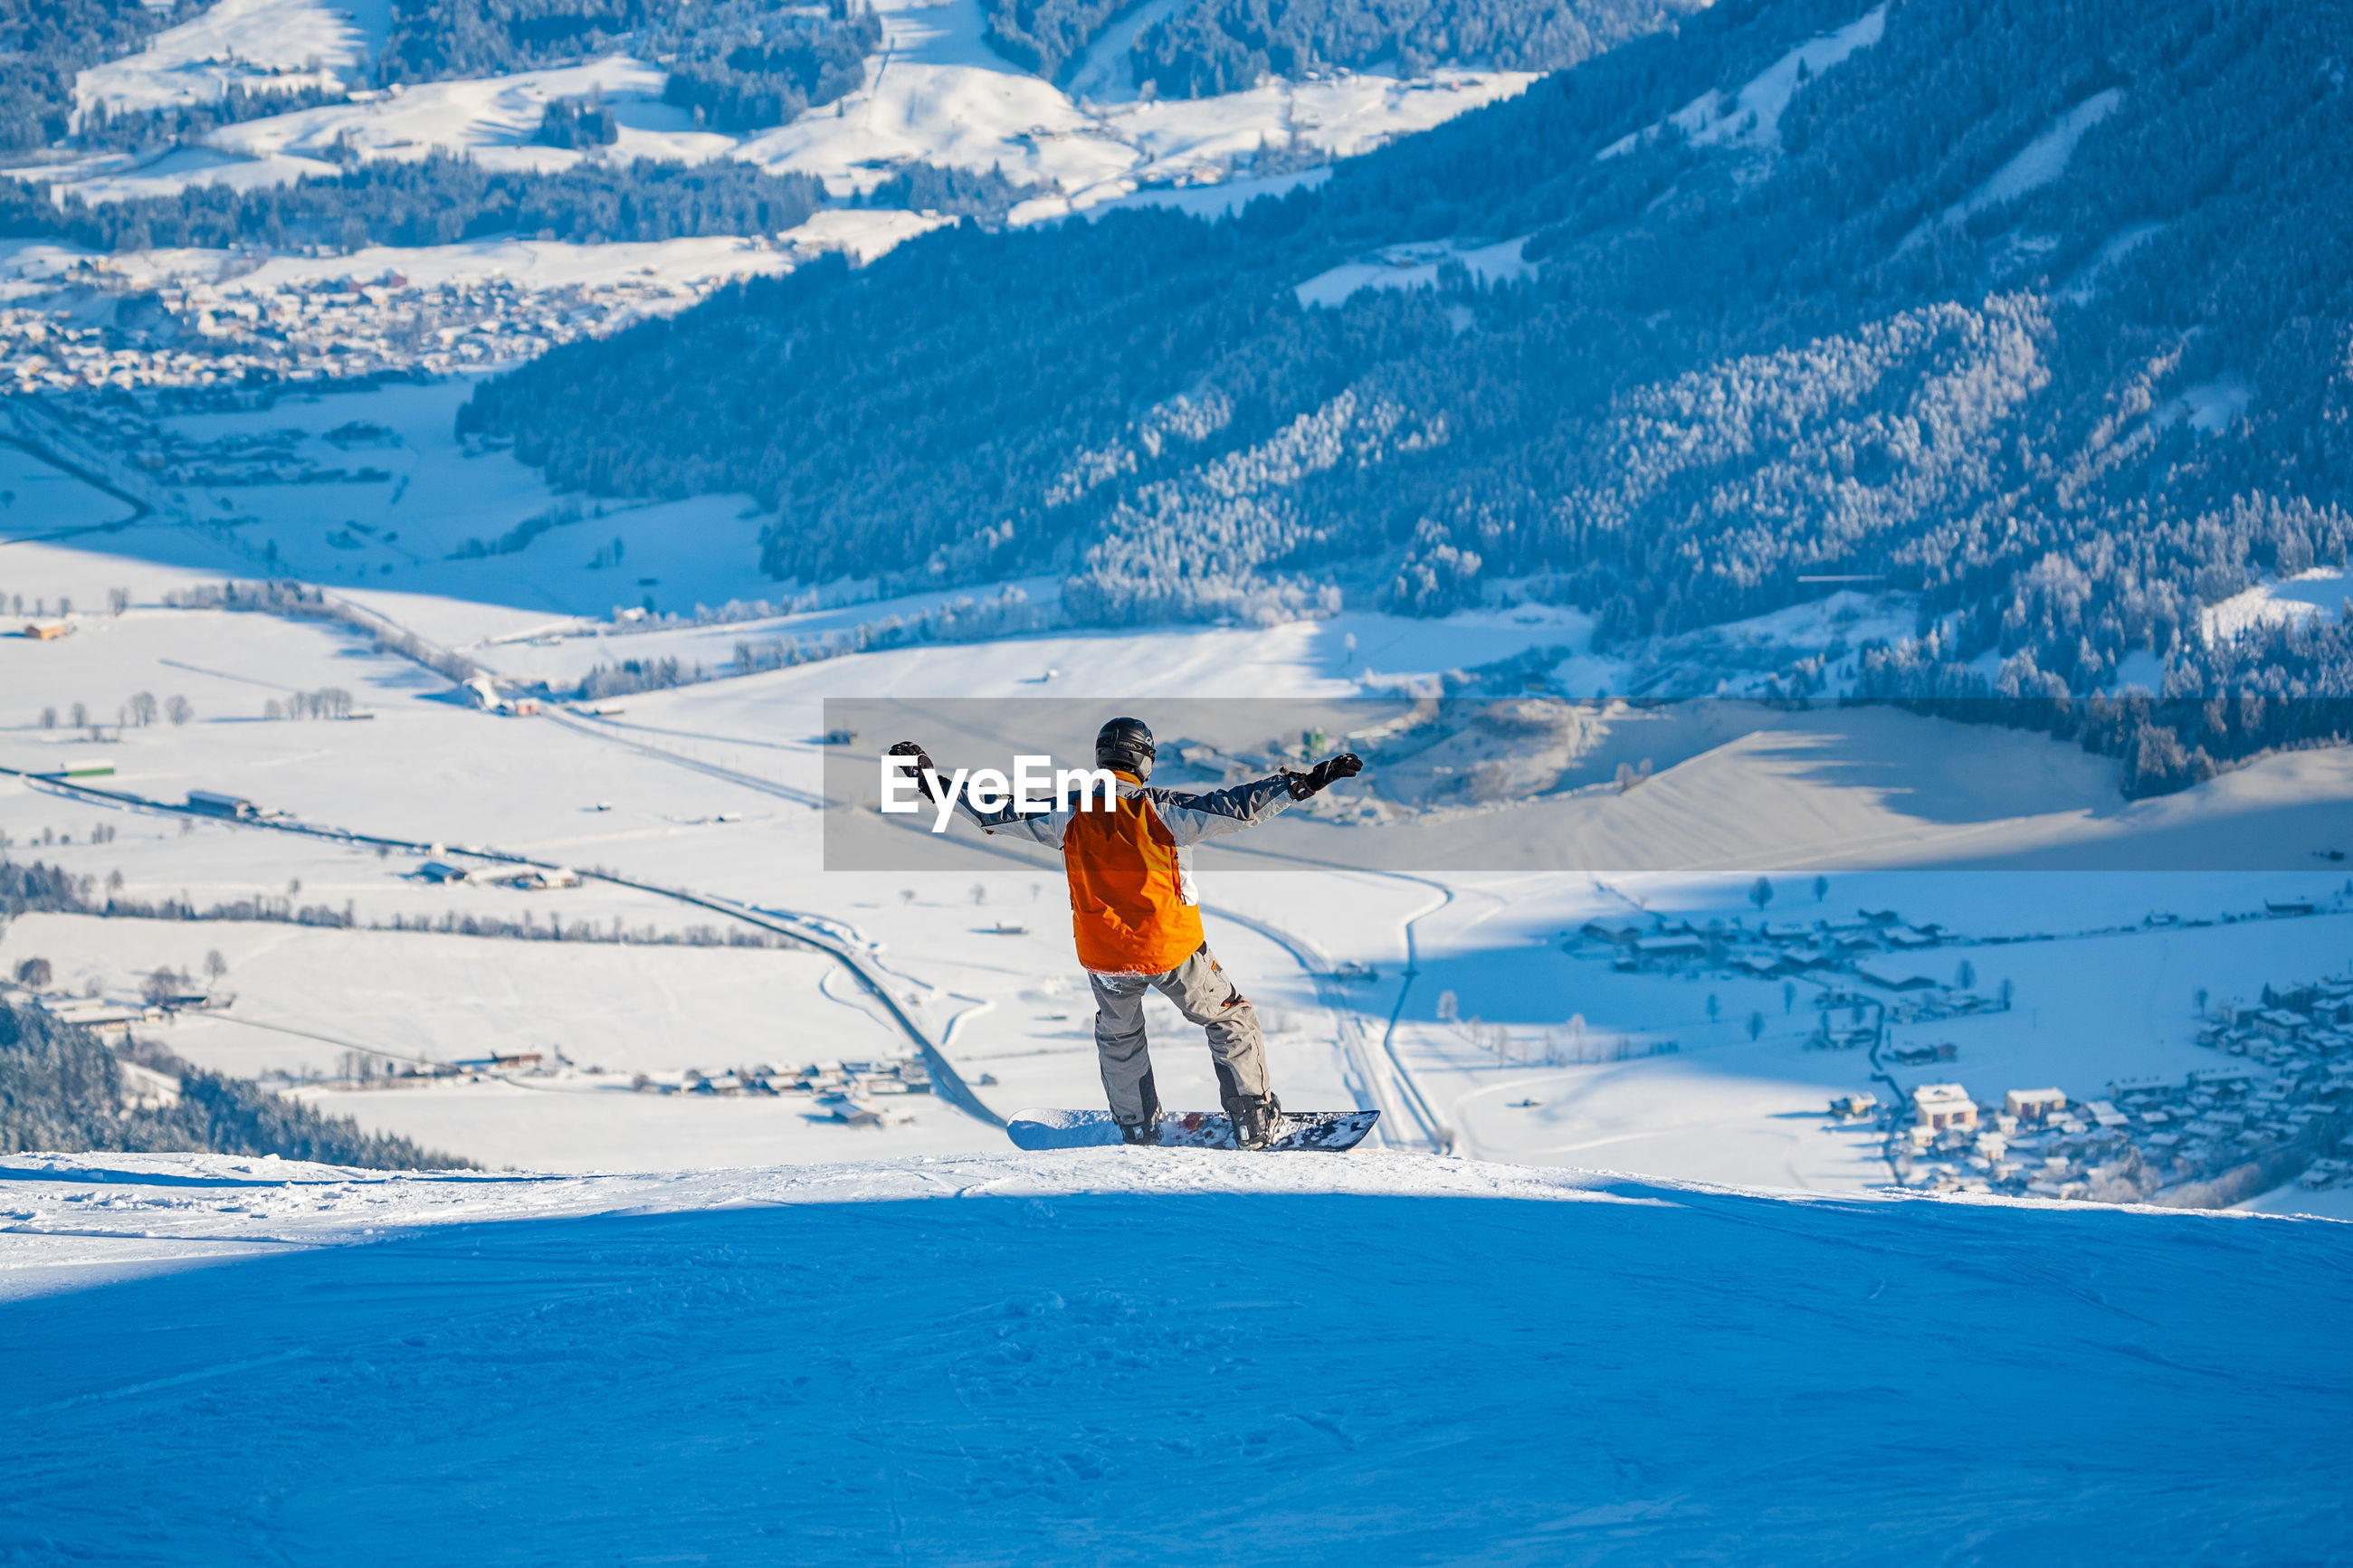 Rear view of man snowboarding on mountain